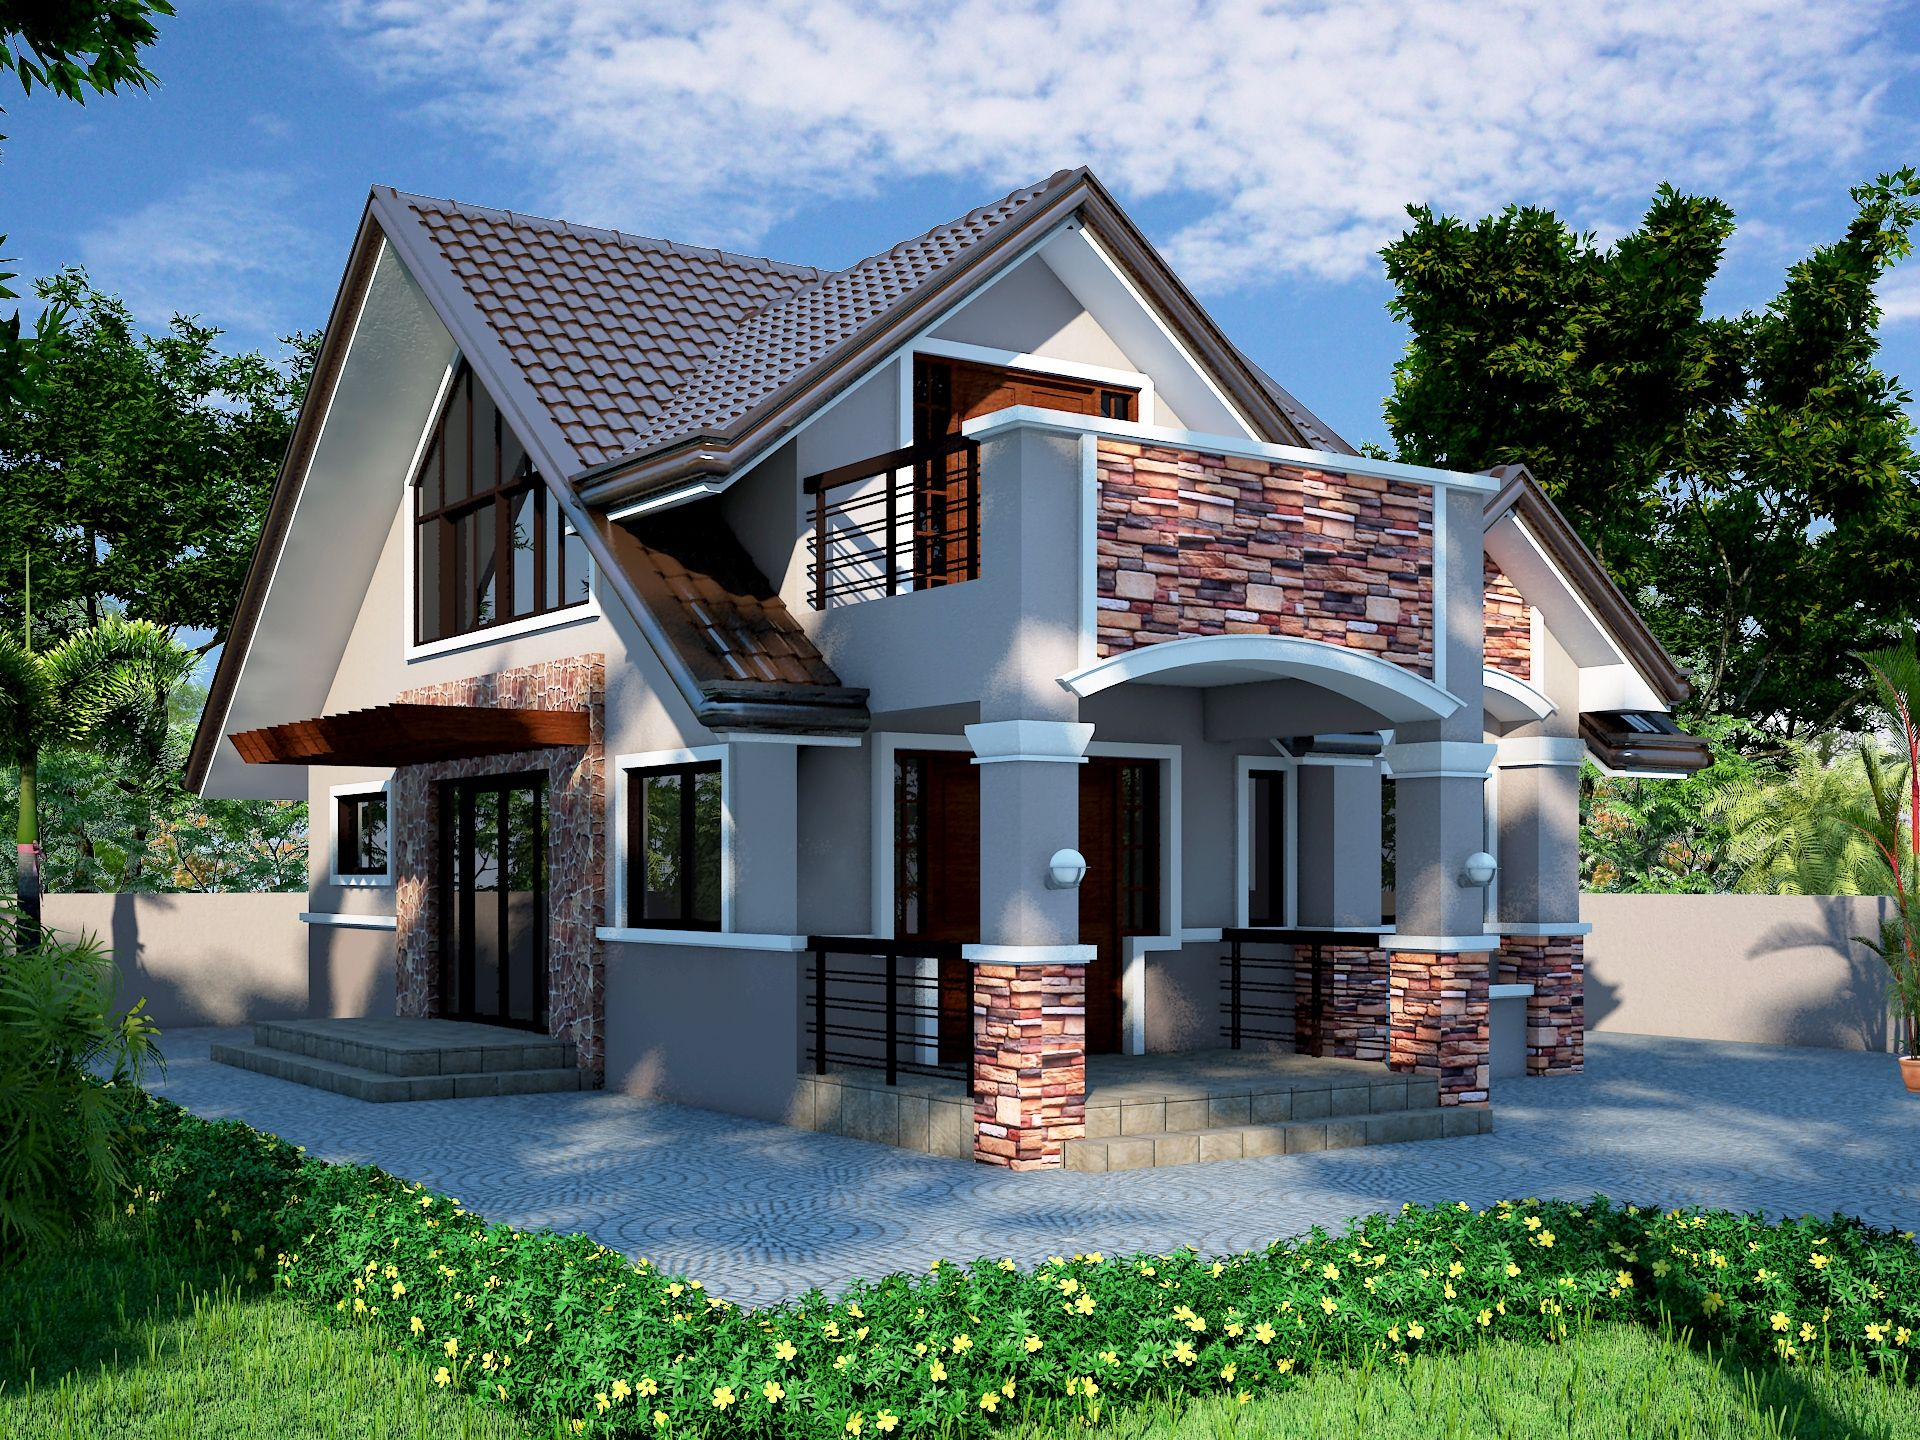 dd27a89a983bc8323006373d3628d9d5 - 44+ Small Modern Bungalow House Plans Philippines  Pics